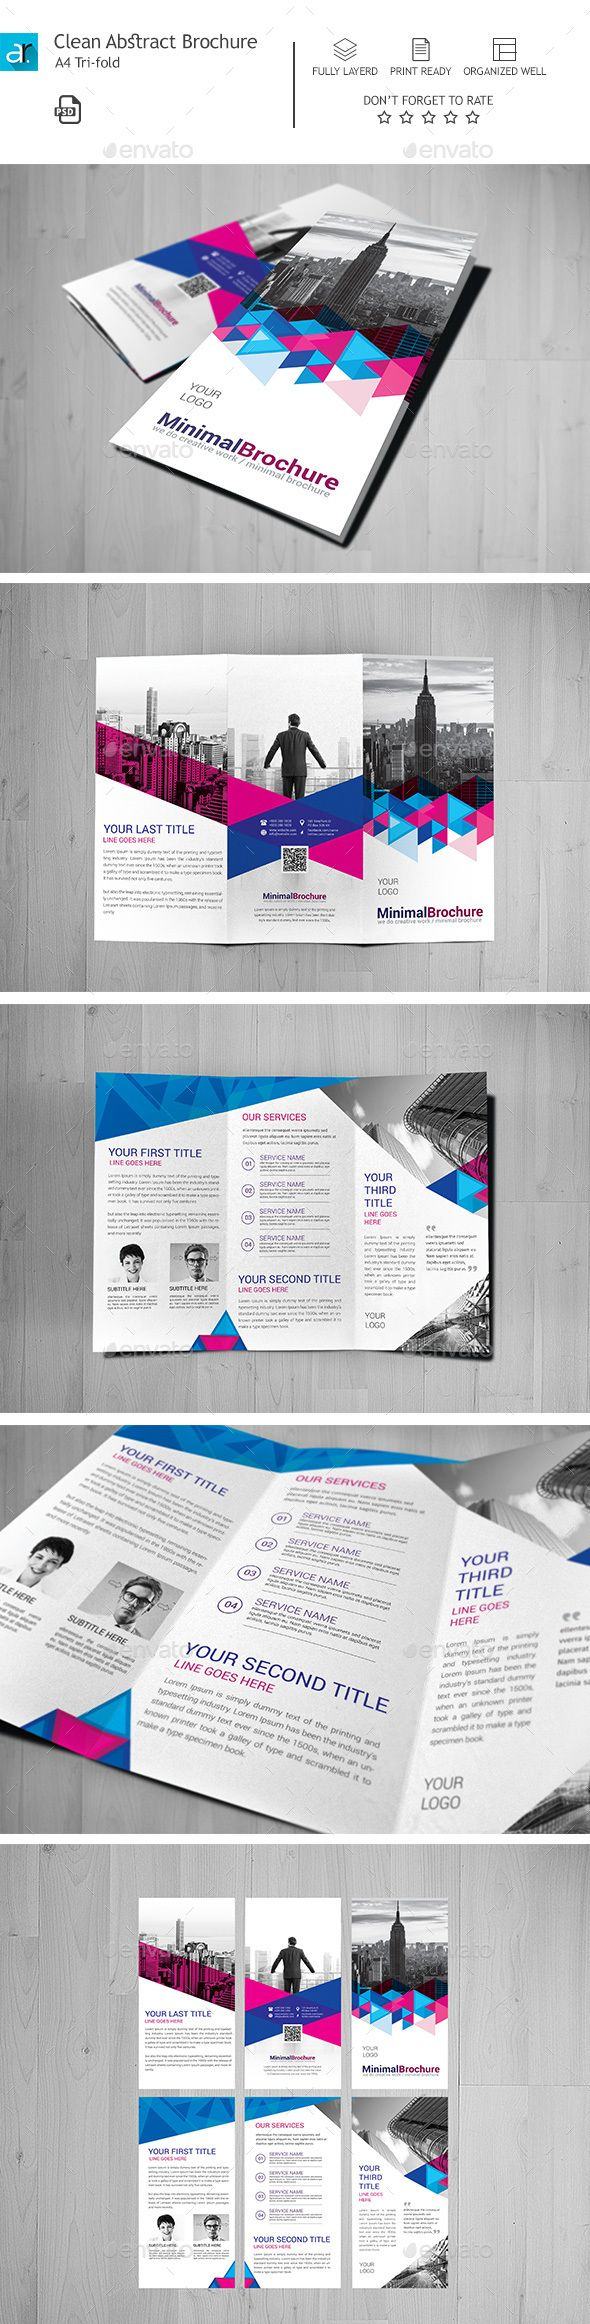 Clean Abstract Tri-fold Brochure Template PSD #design Download: http://graphicriver.net/item/clean-abstract-trifold-brochure-02/13530008?ref=ksioks